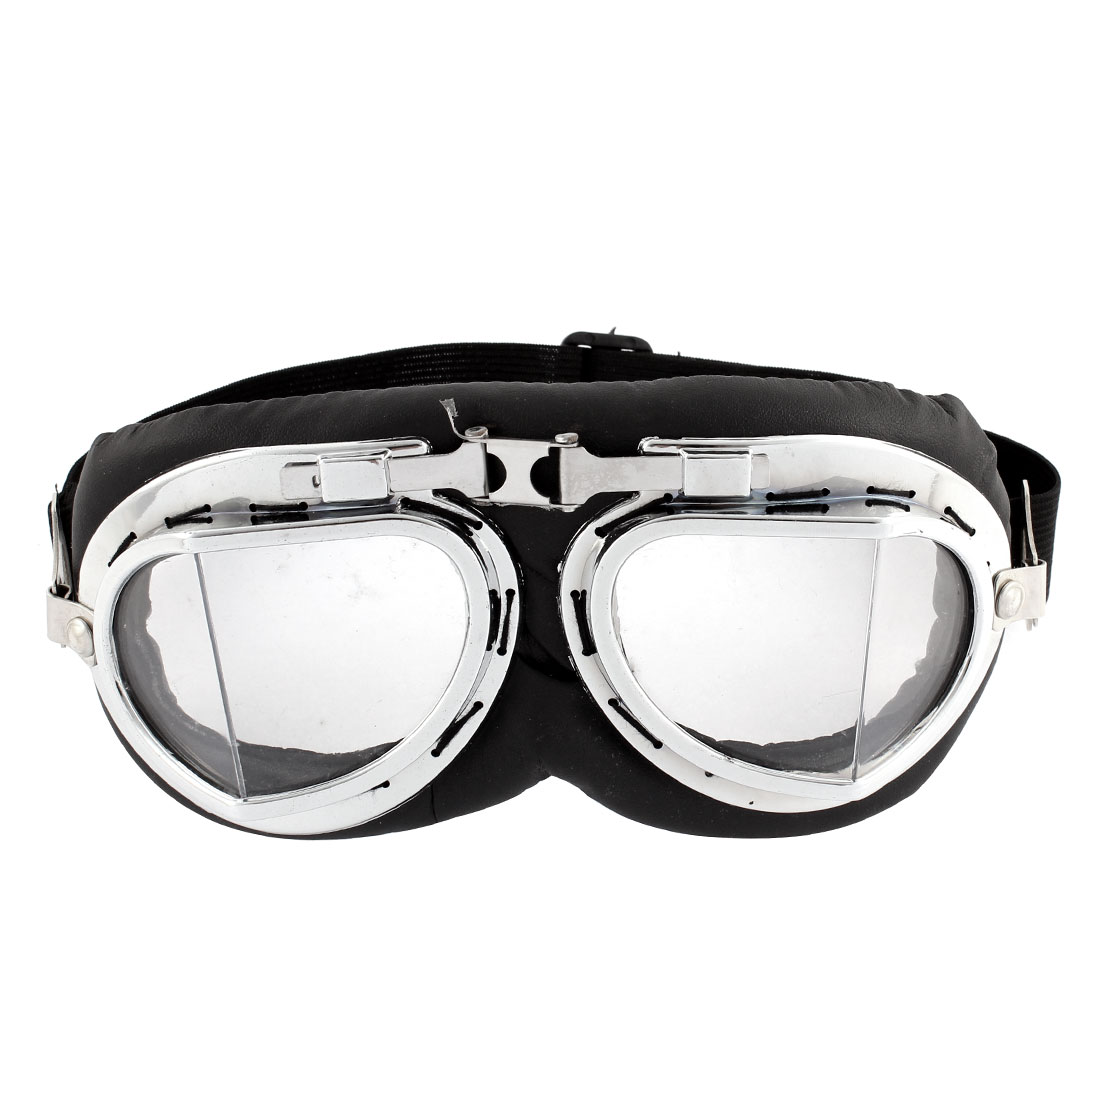 Motorcycle Bicycle Driving Black Silver Tone Protective Goggles Glasses Sunglasses